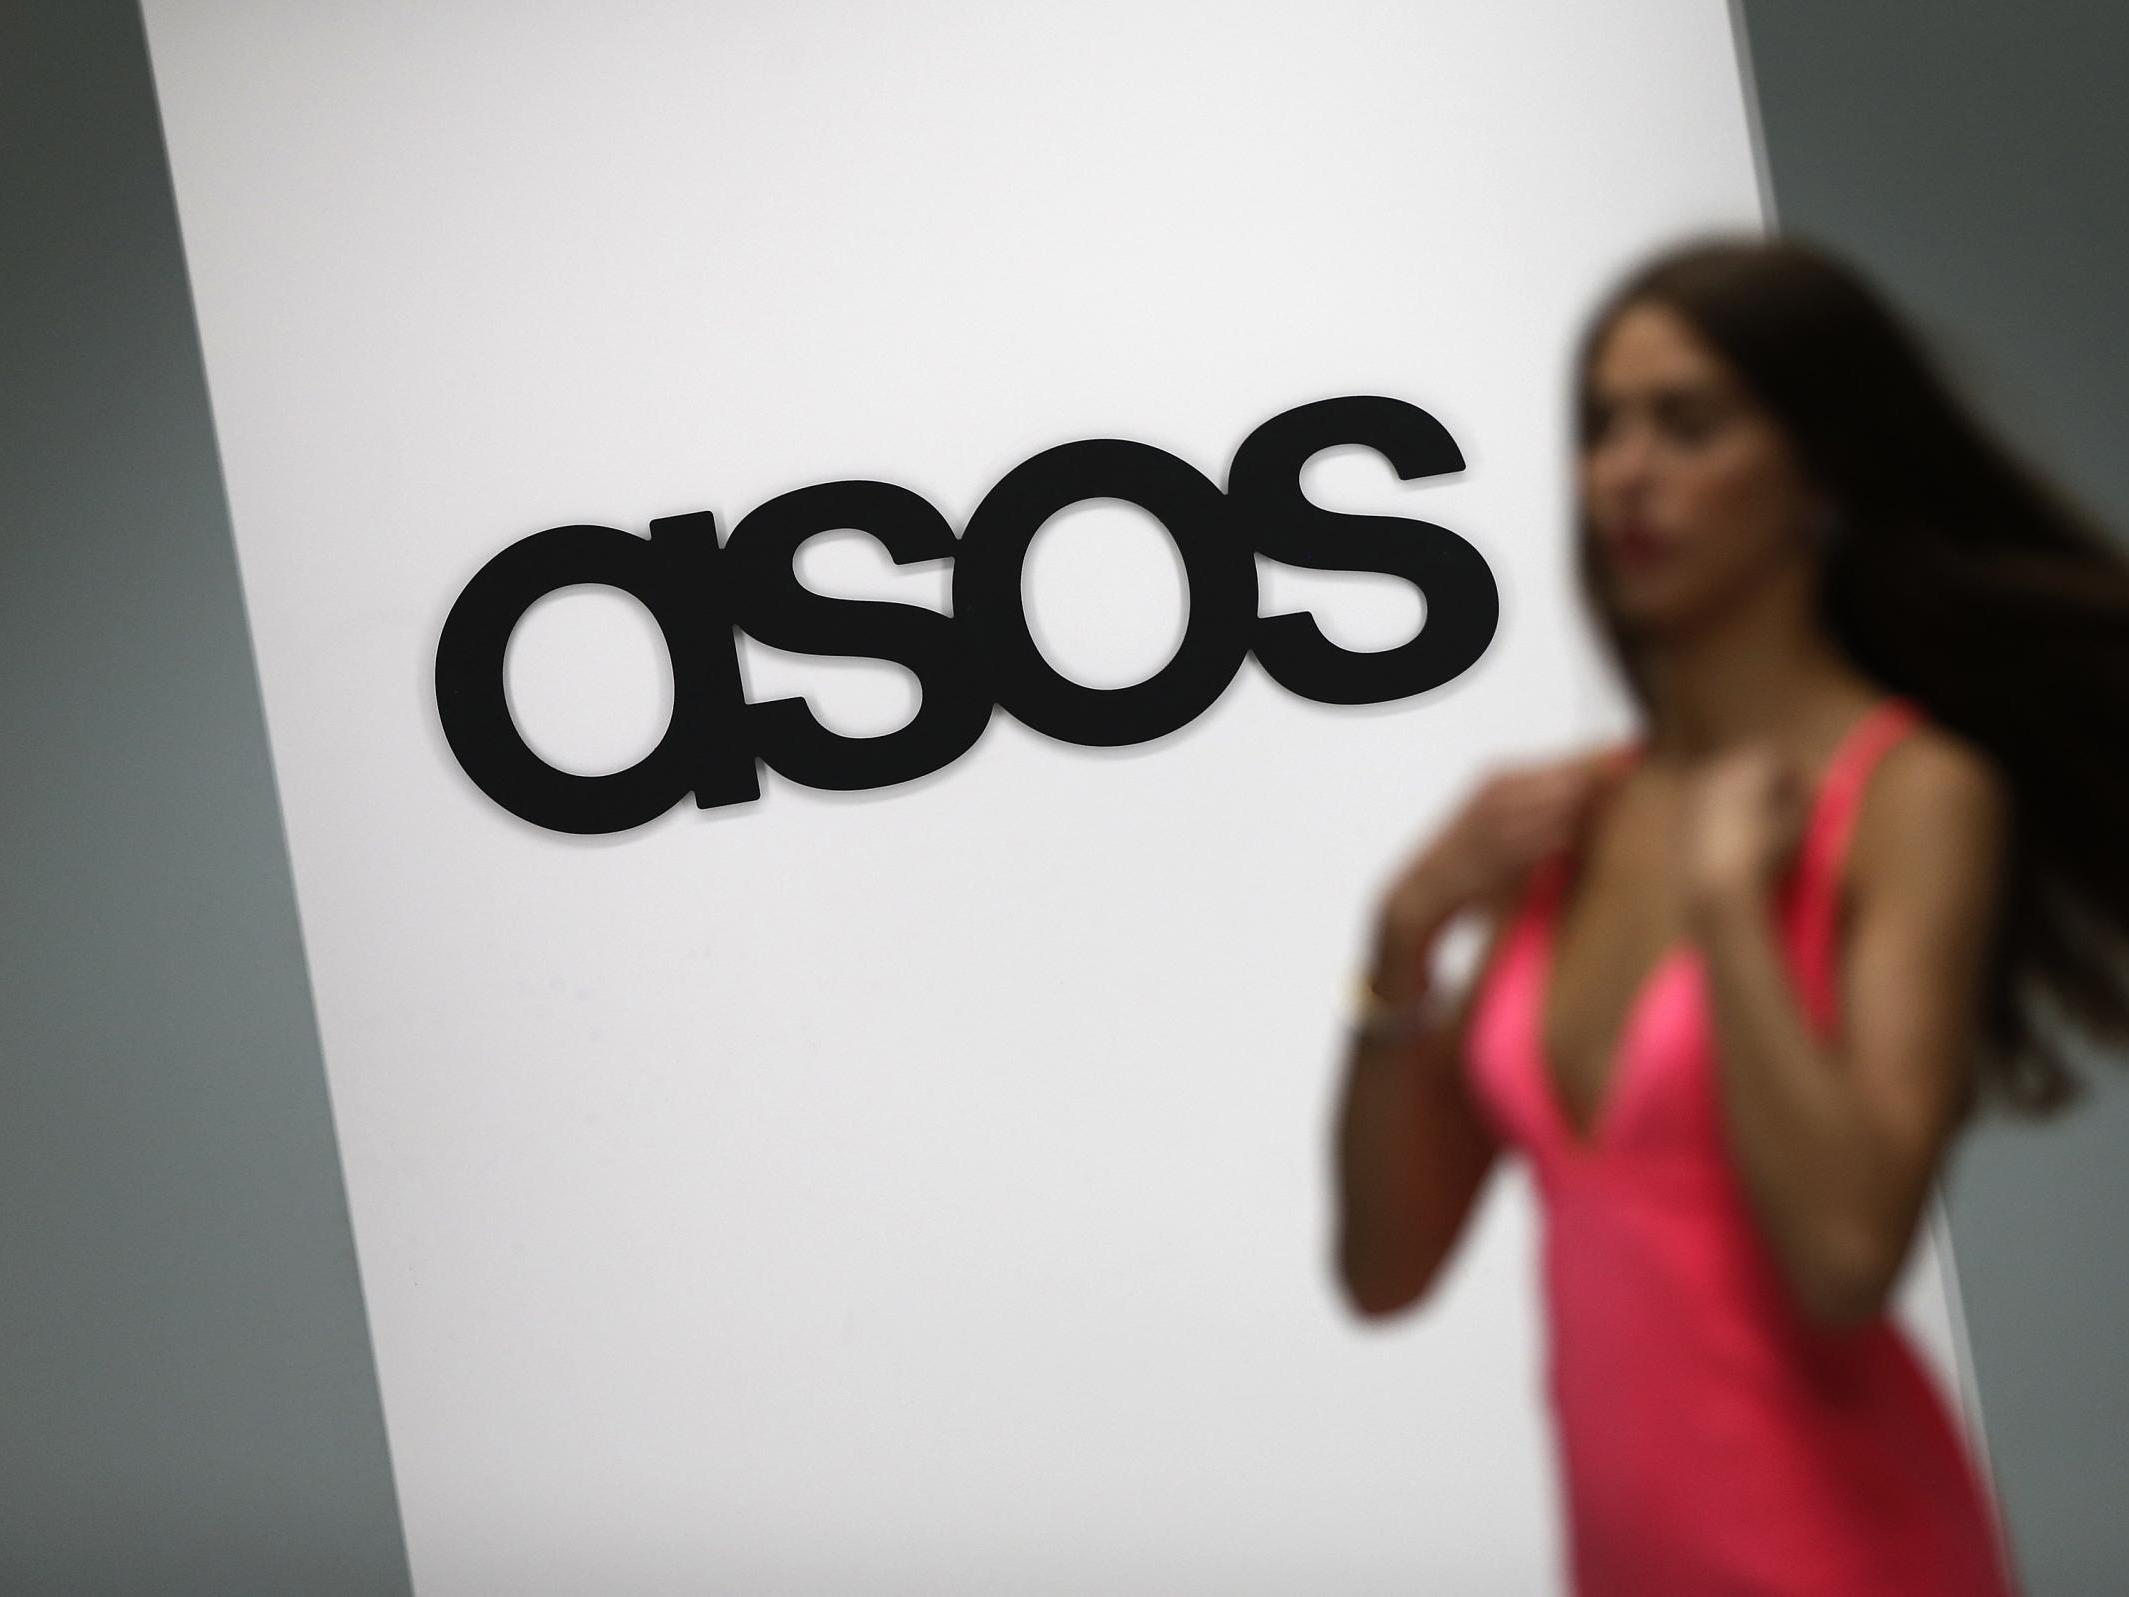 2d719fa412d Asos sales and profits soar as online fashion retailer leaves high street  rivals behind